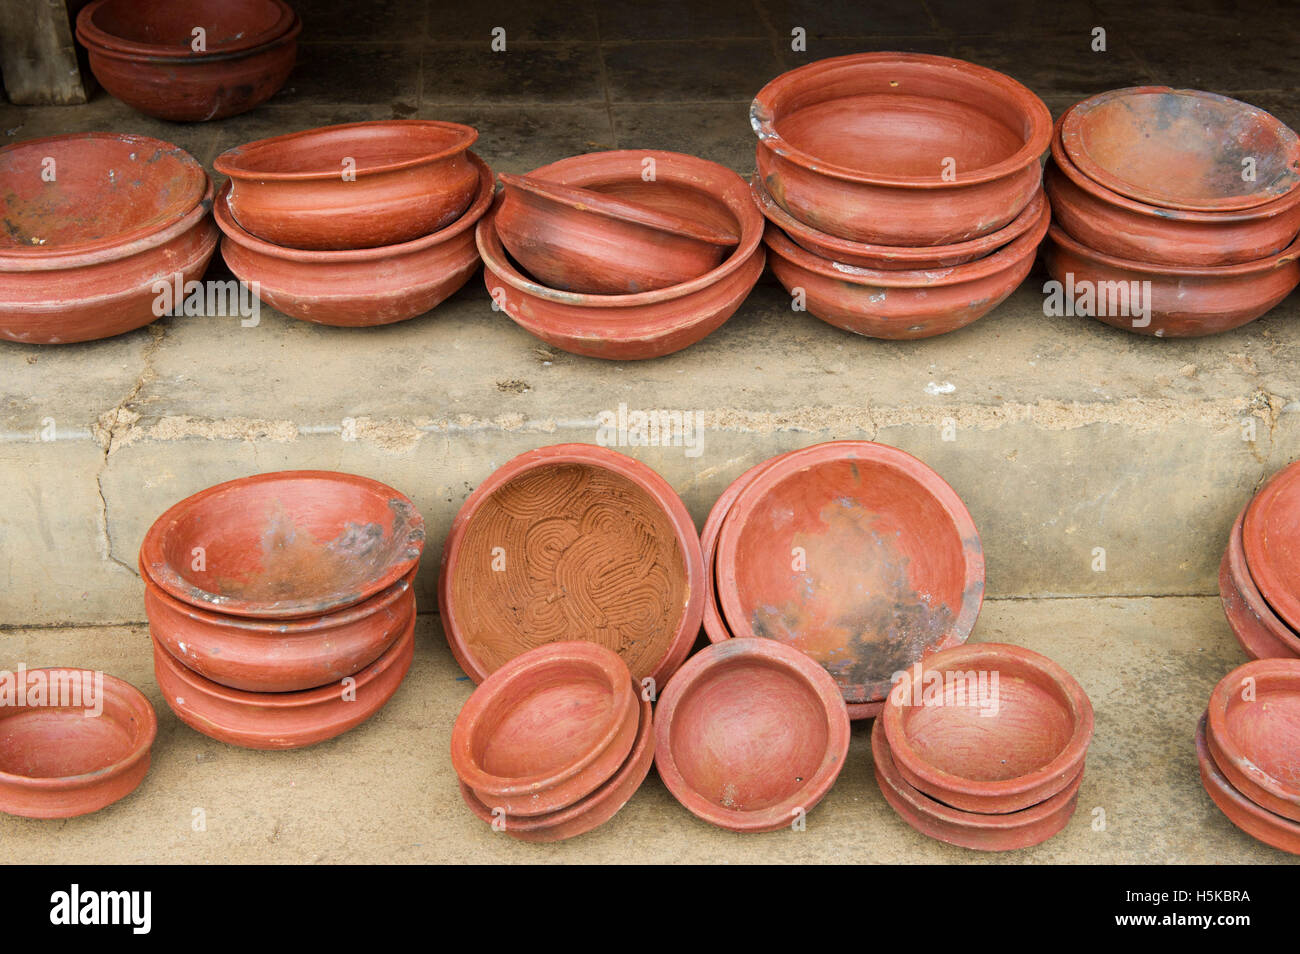 clay pot cooking for sale Clay cooking pots for sale in the market, Batticaloa, Sri Lanka